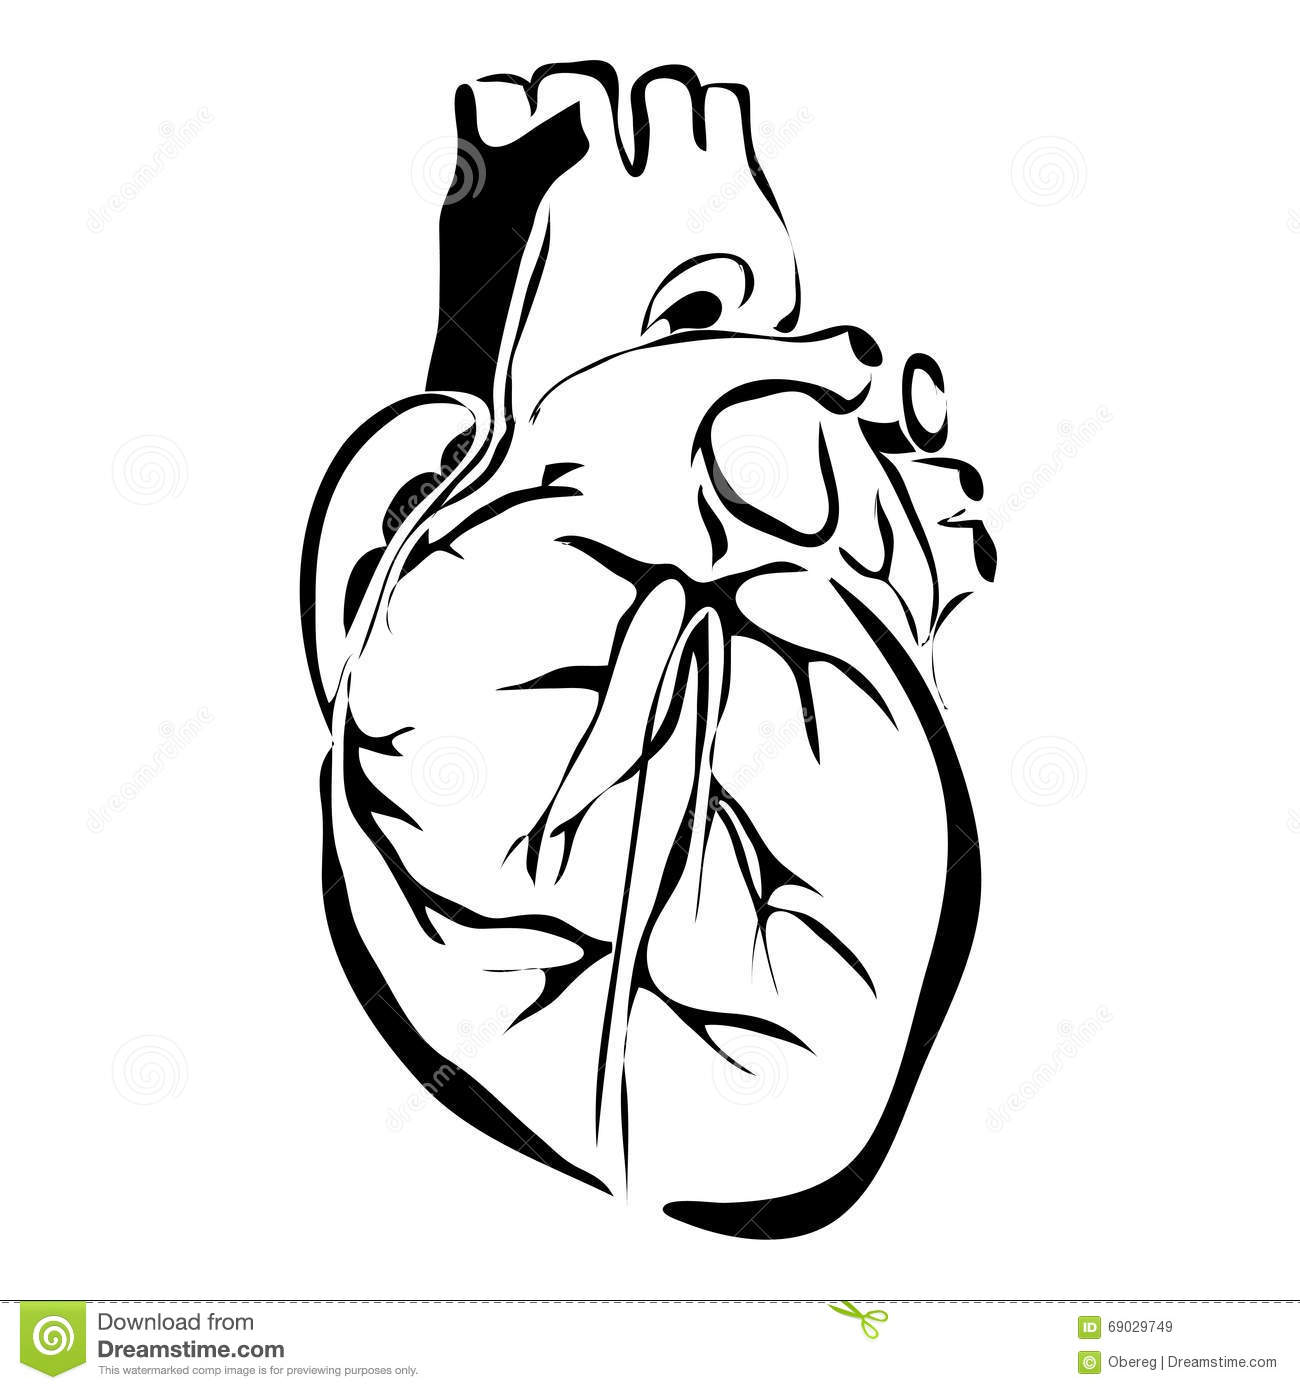 organ diagram outline from use case hotel heart human internal organs stock vector image